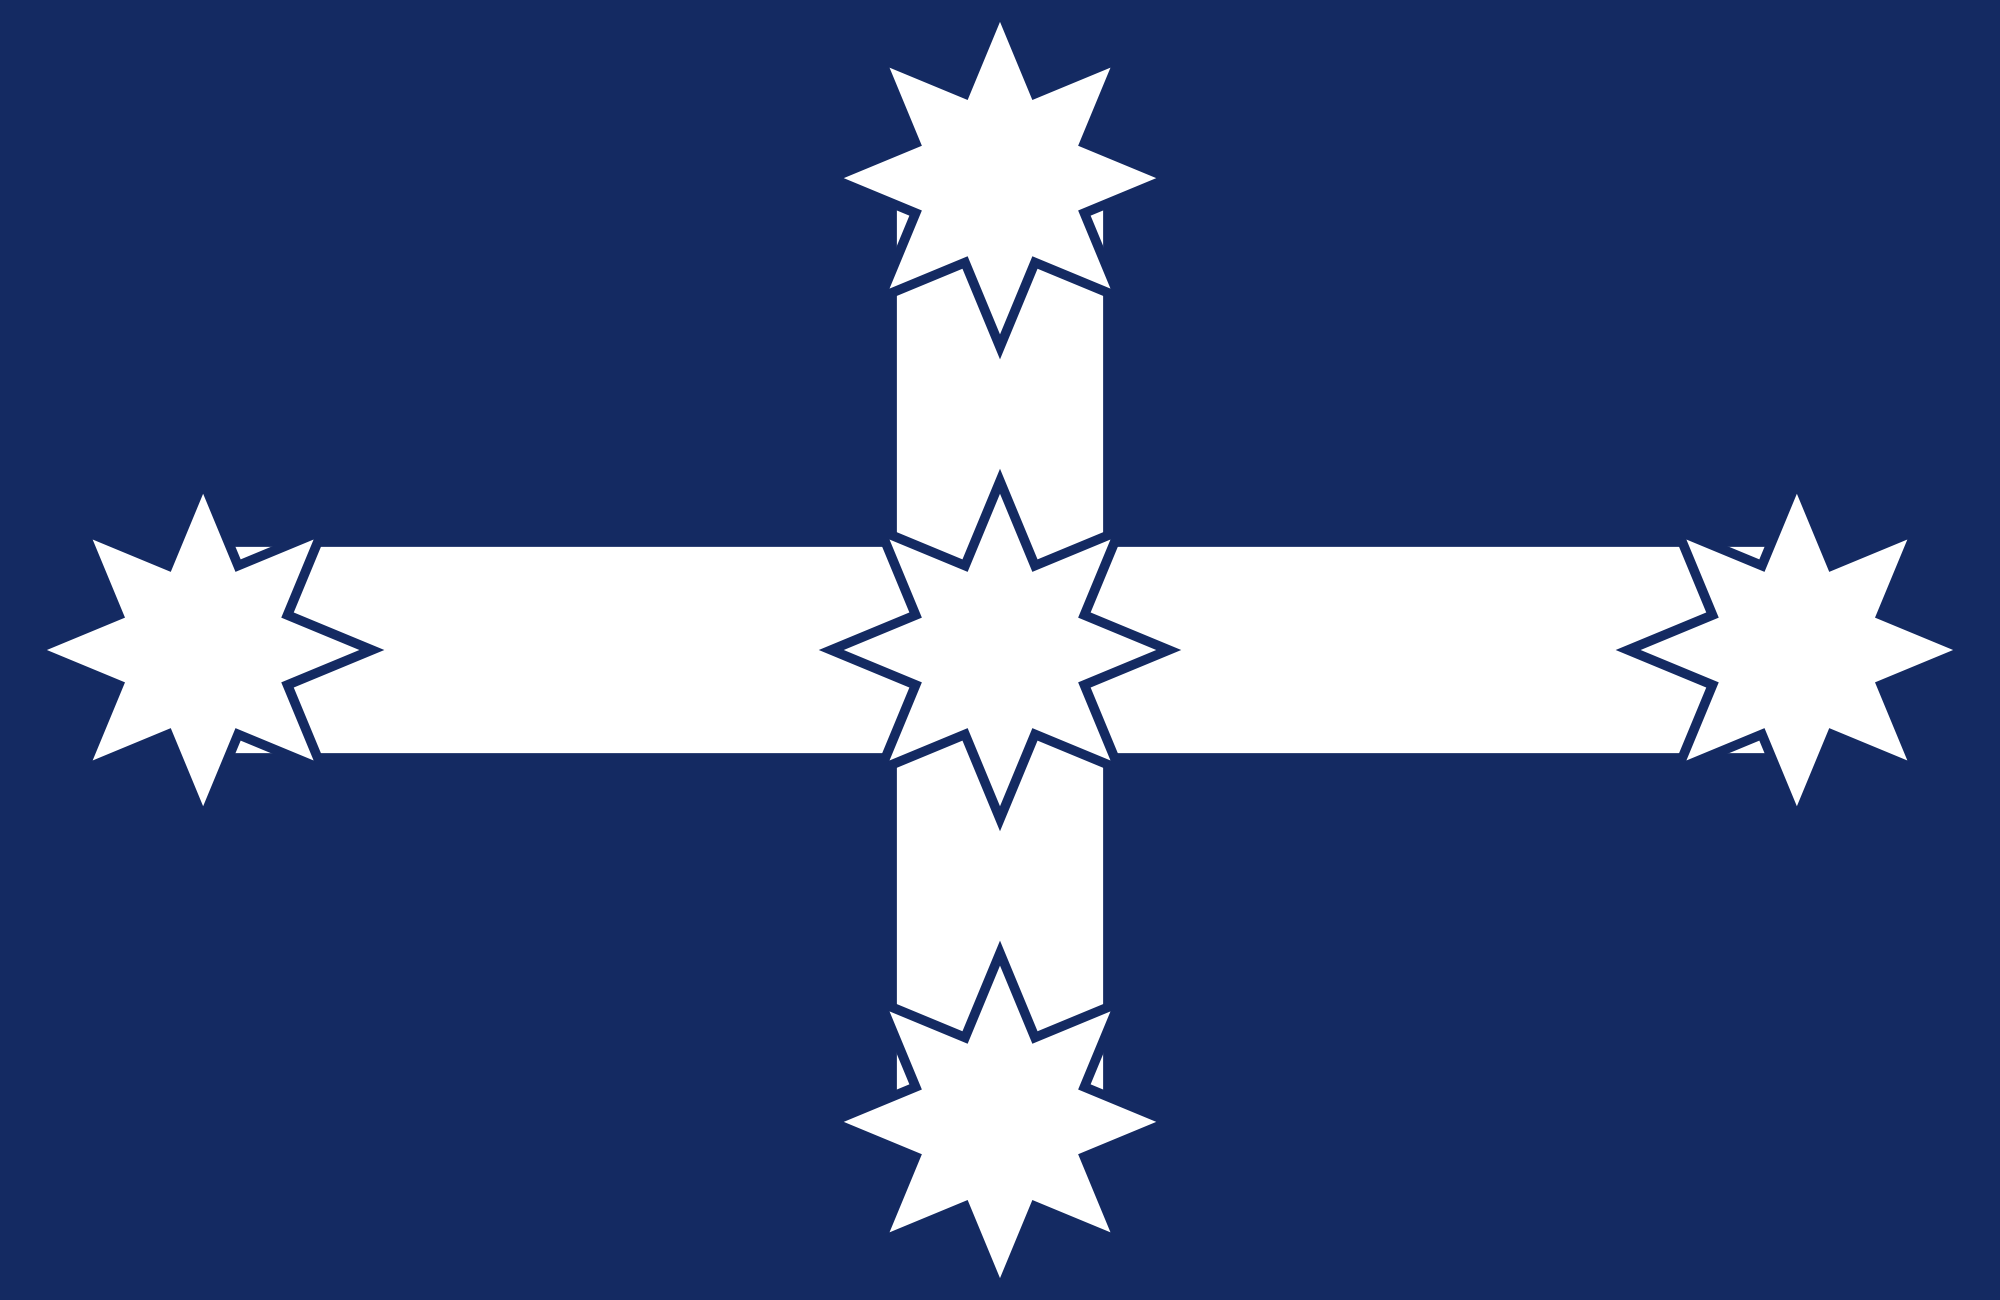 fail to get eureka flag green left weekly